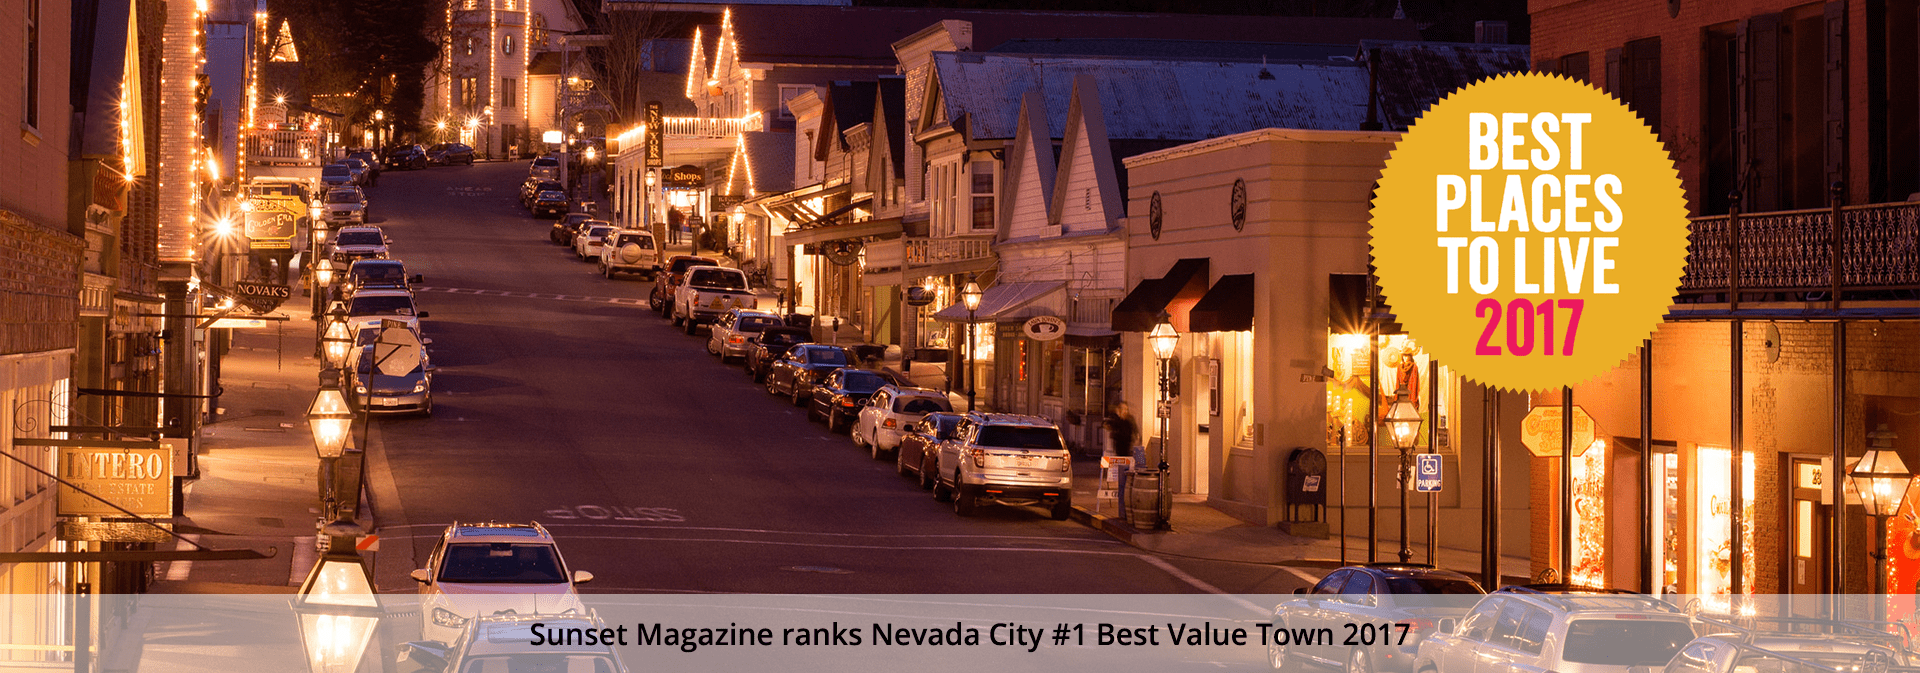 Sunset Magazine ranks Nevada City #1 Best Value Town 2017